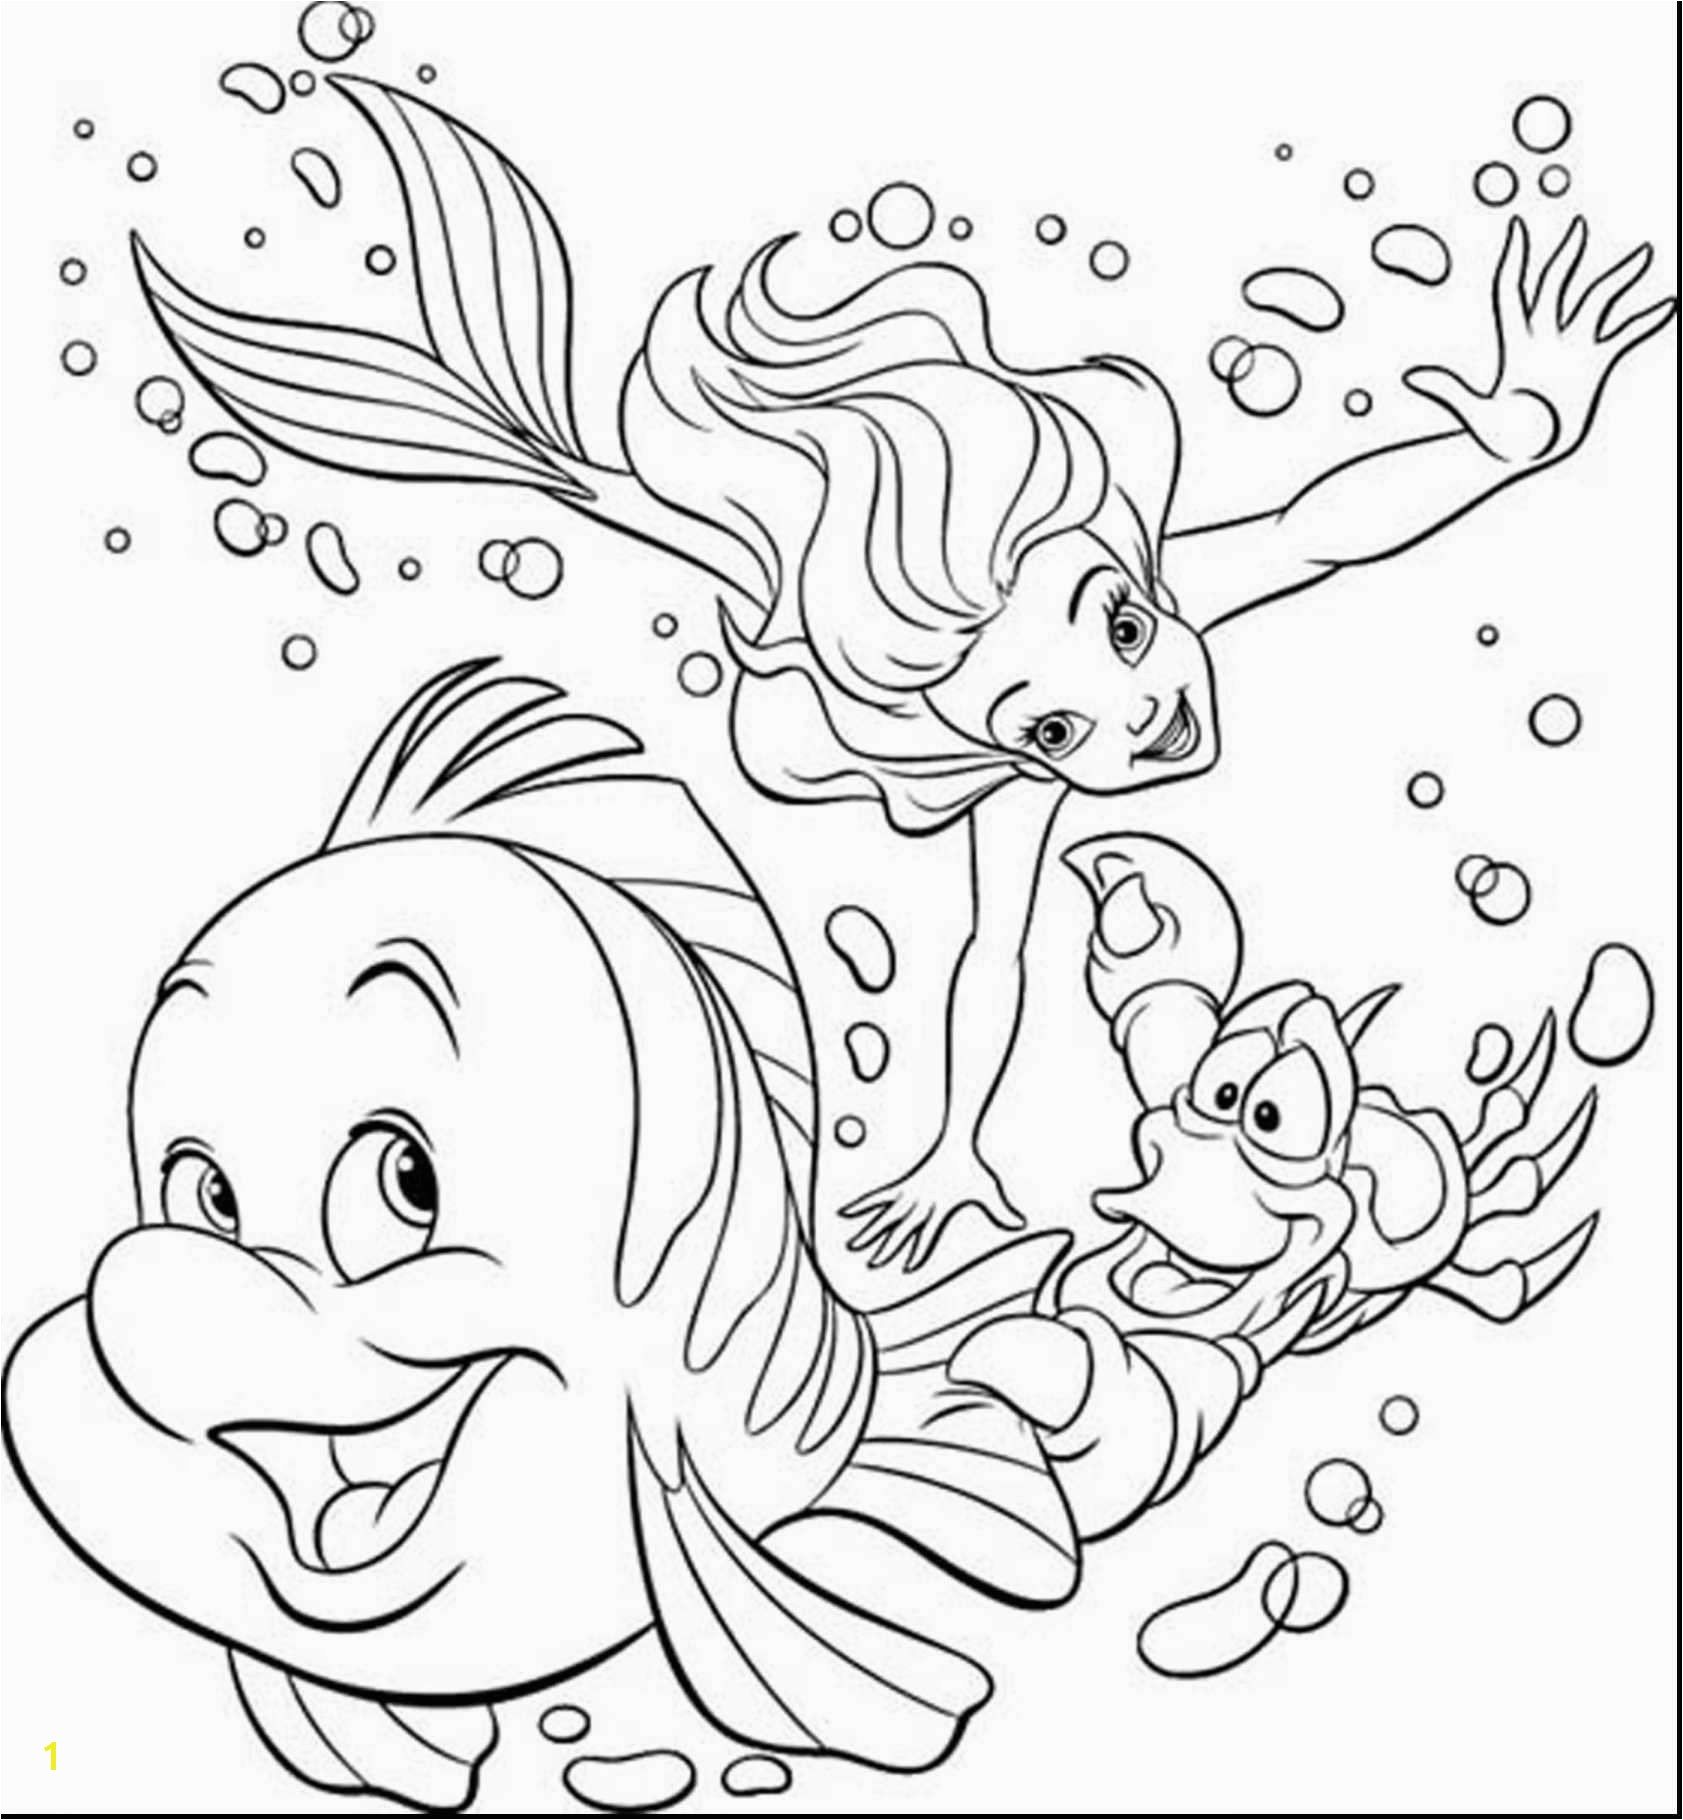 Superman Christmas Coloring Pages Superman Christmas Coloring Pages Coloring Pages Coloring Pages